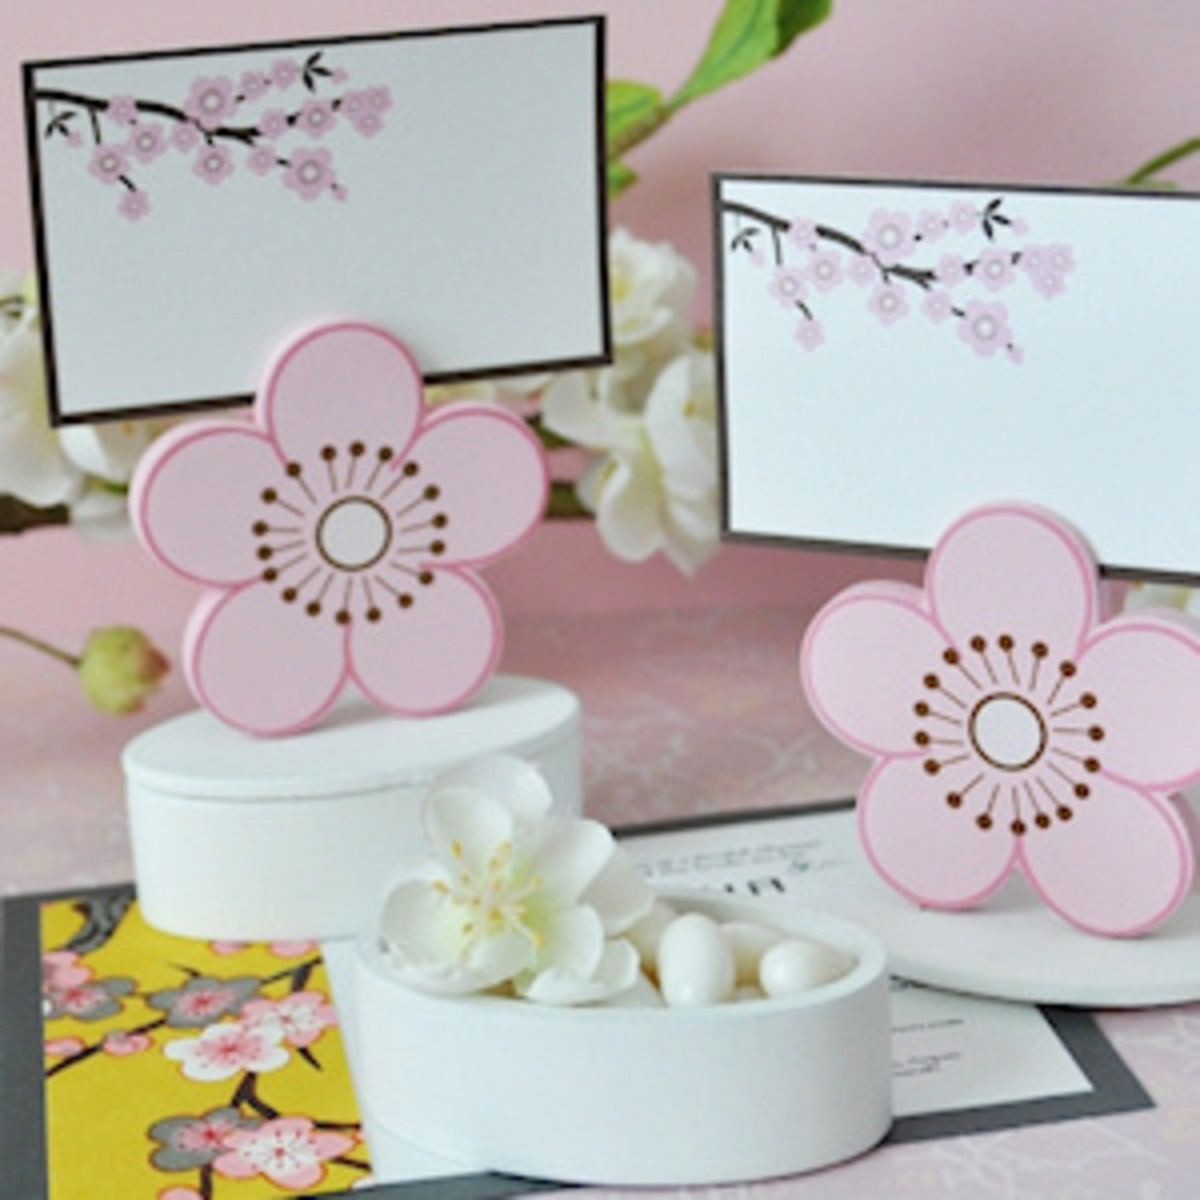 Cherry blossom place card holders/favor boxes.